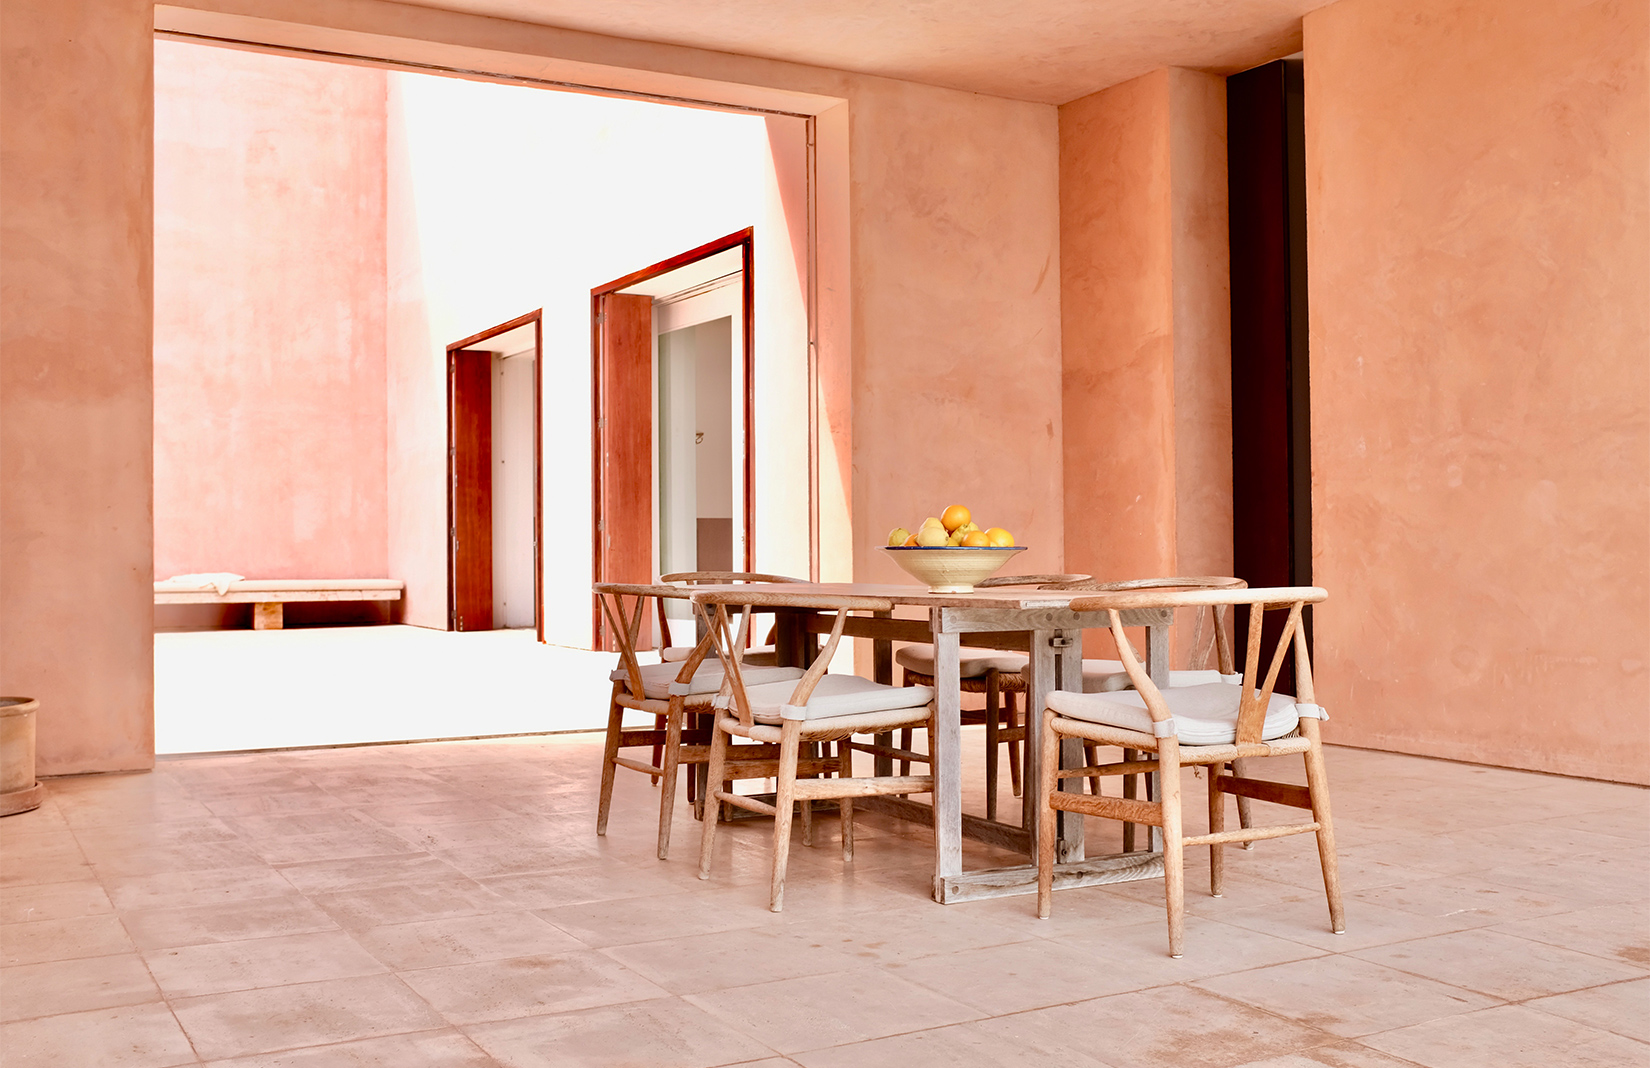 Holiday home of the week: an early taste of John Pawson minimalism in Mallorca